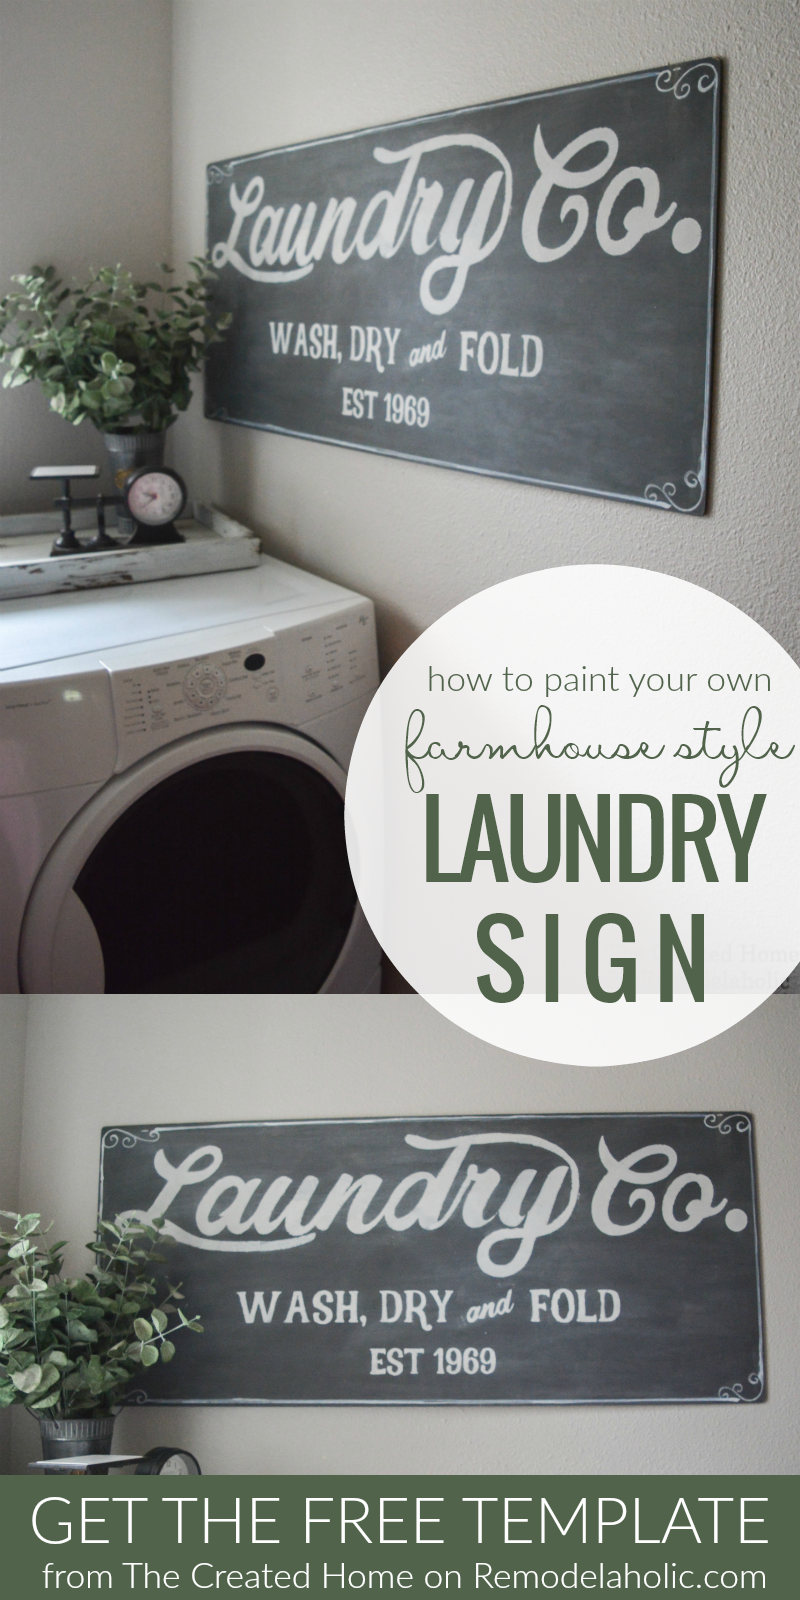 Remodelaholic | Fixer Upper Inspired Farmhouse Laundry Sign + Free Template